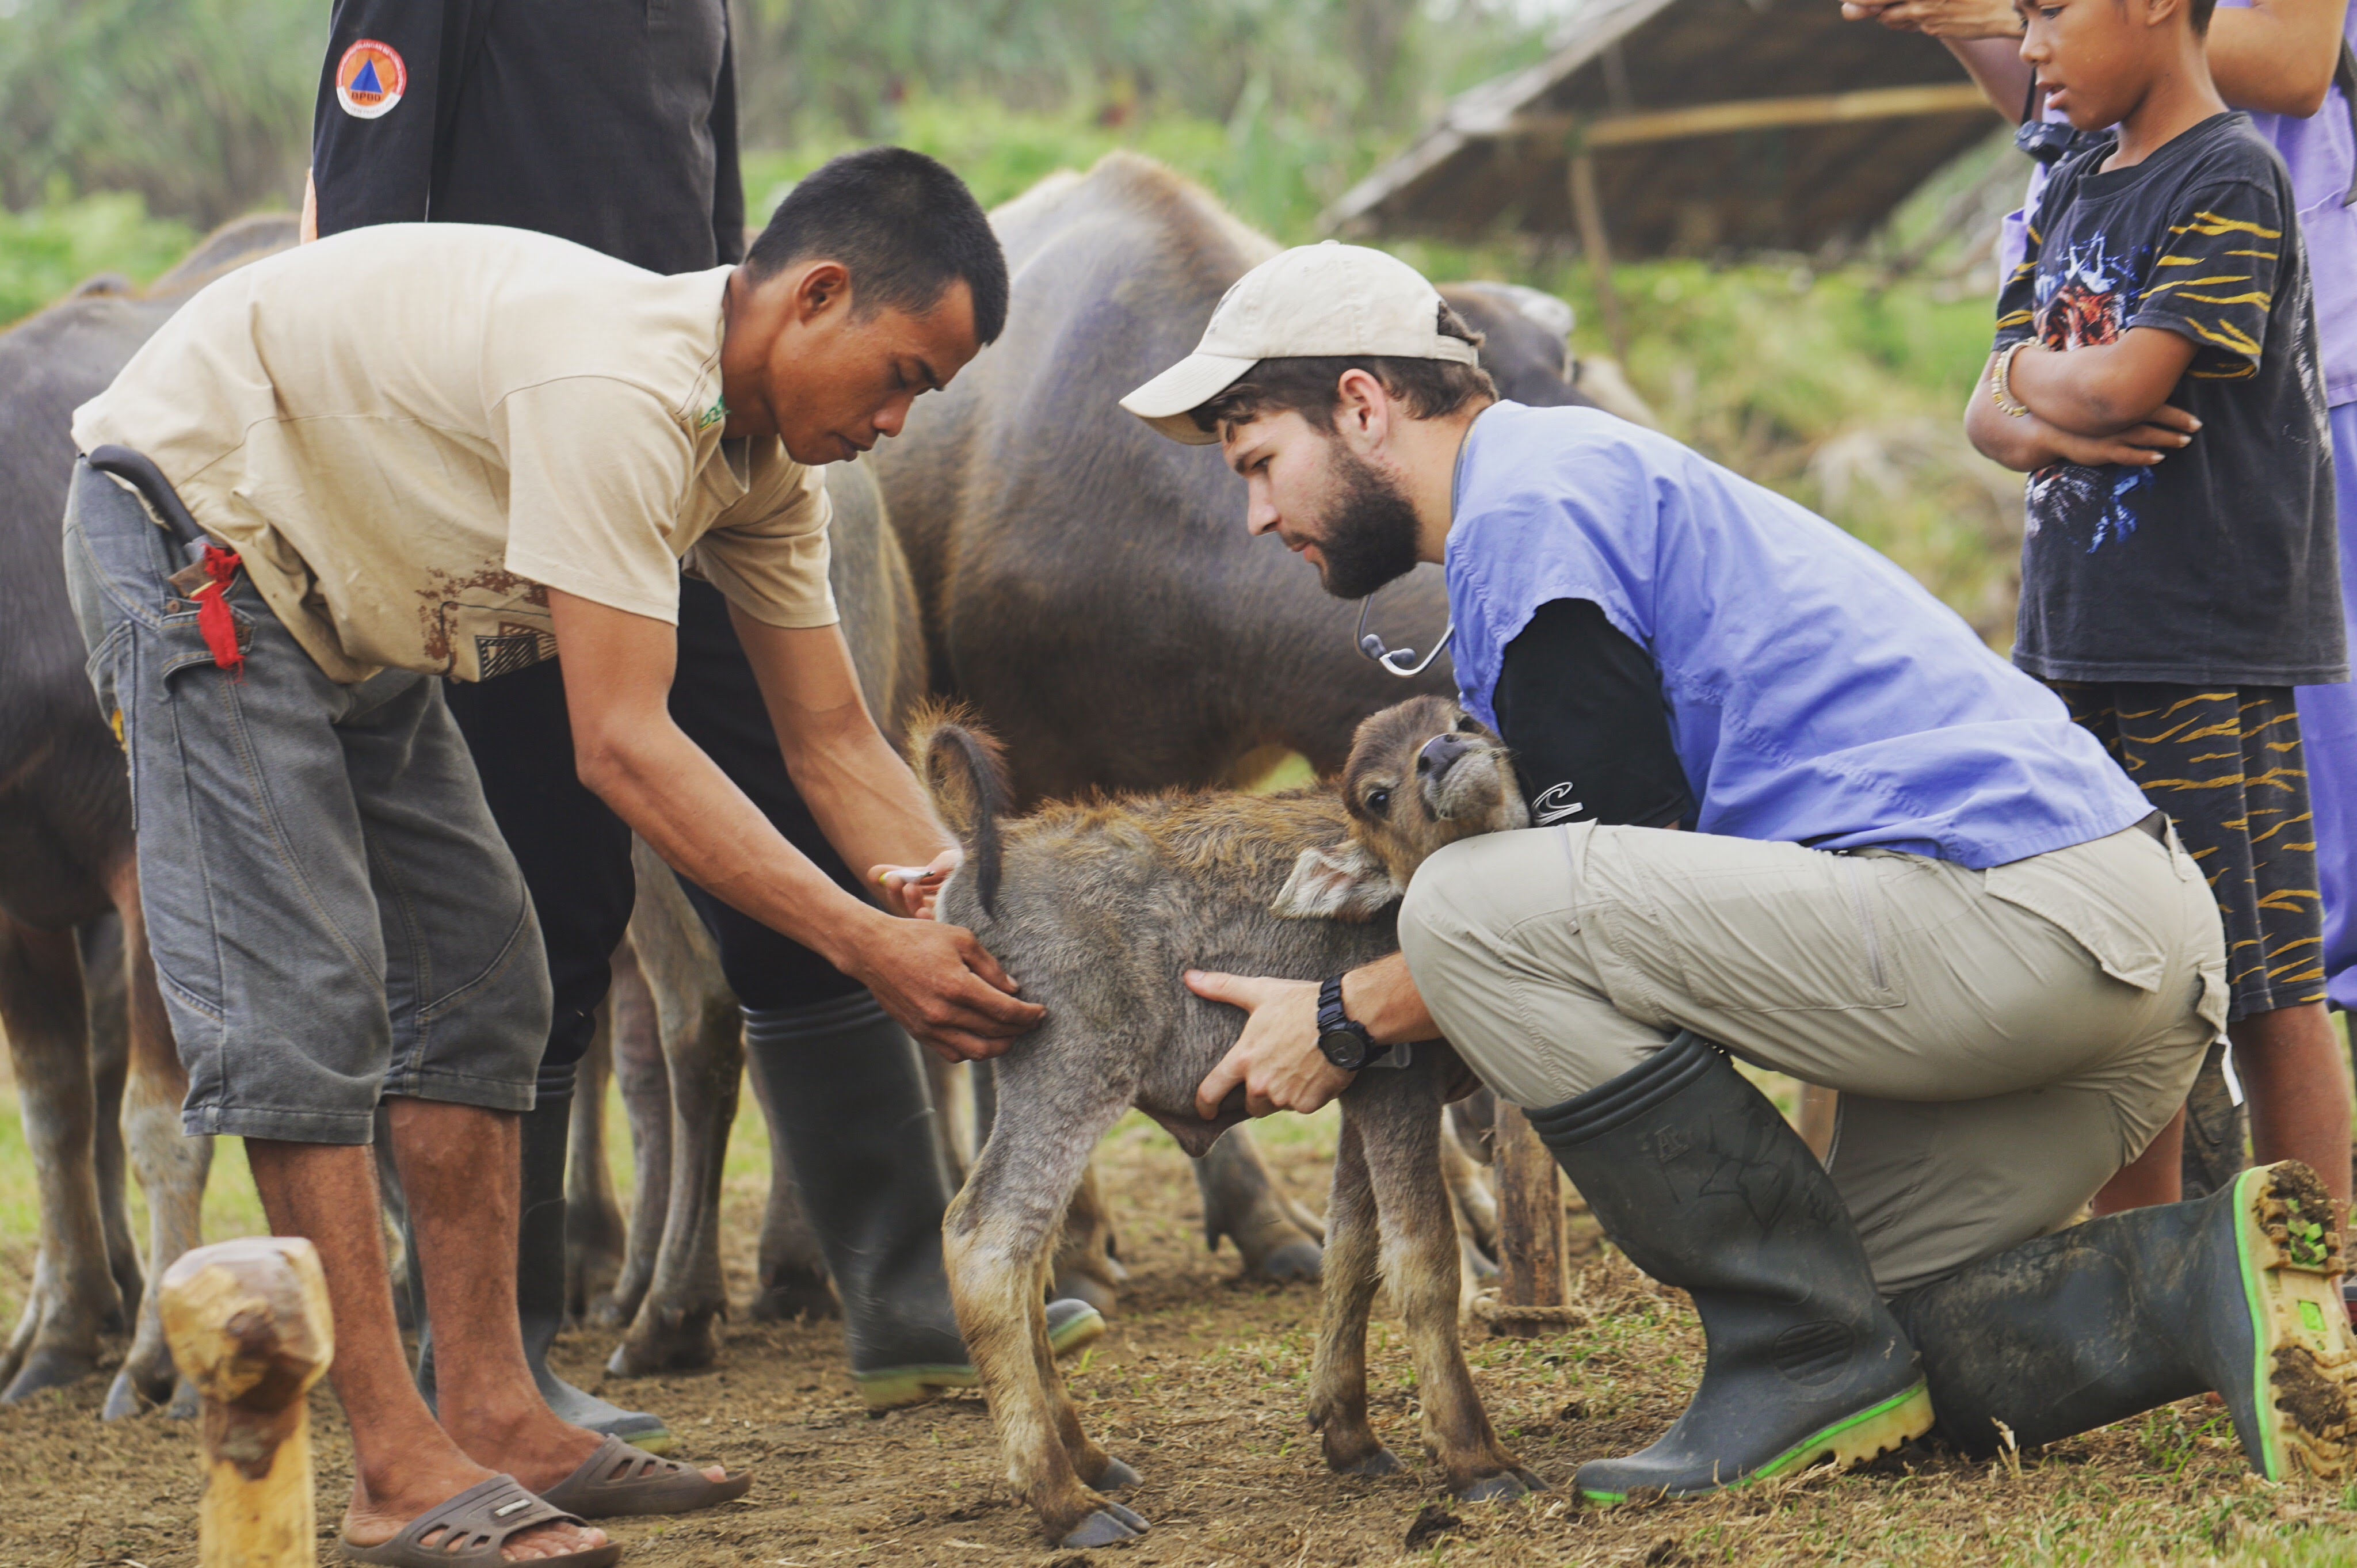 Veterinary student with livestock and local community